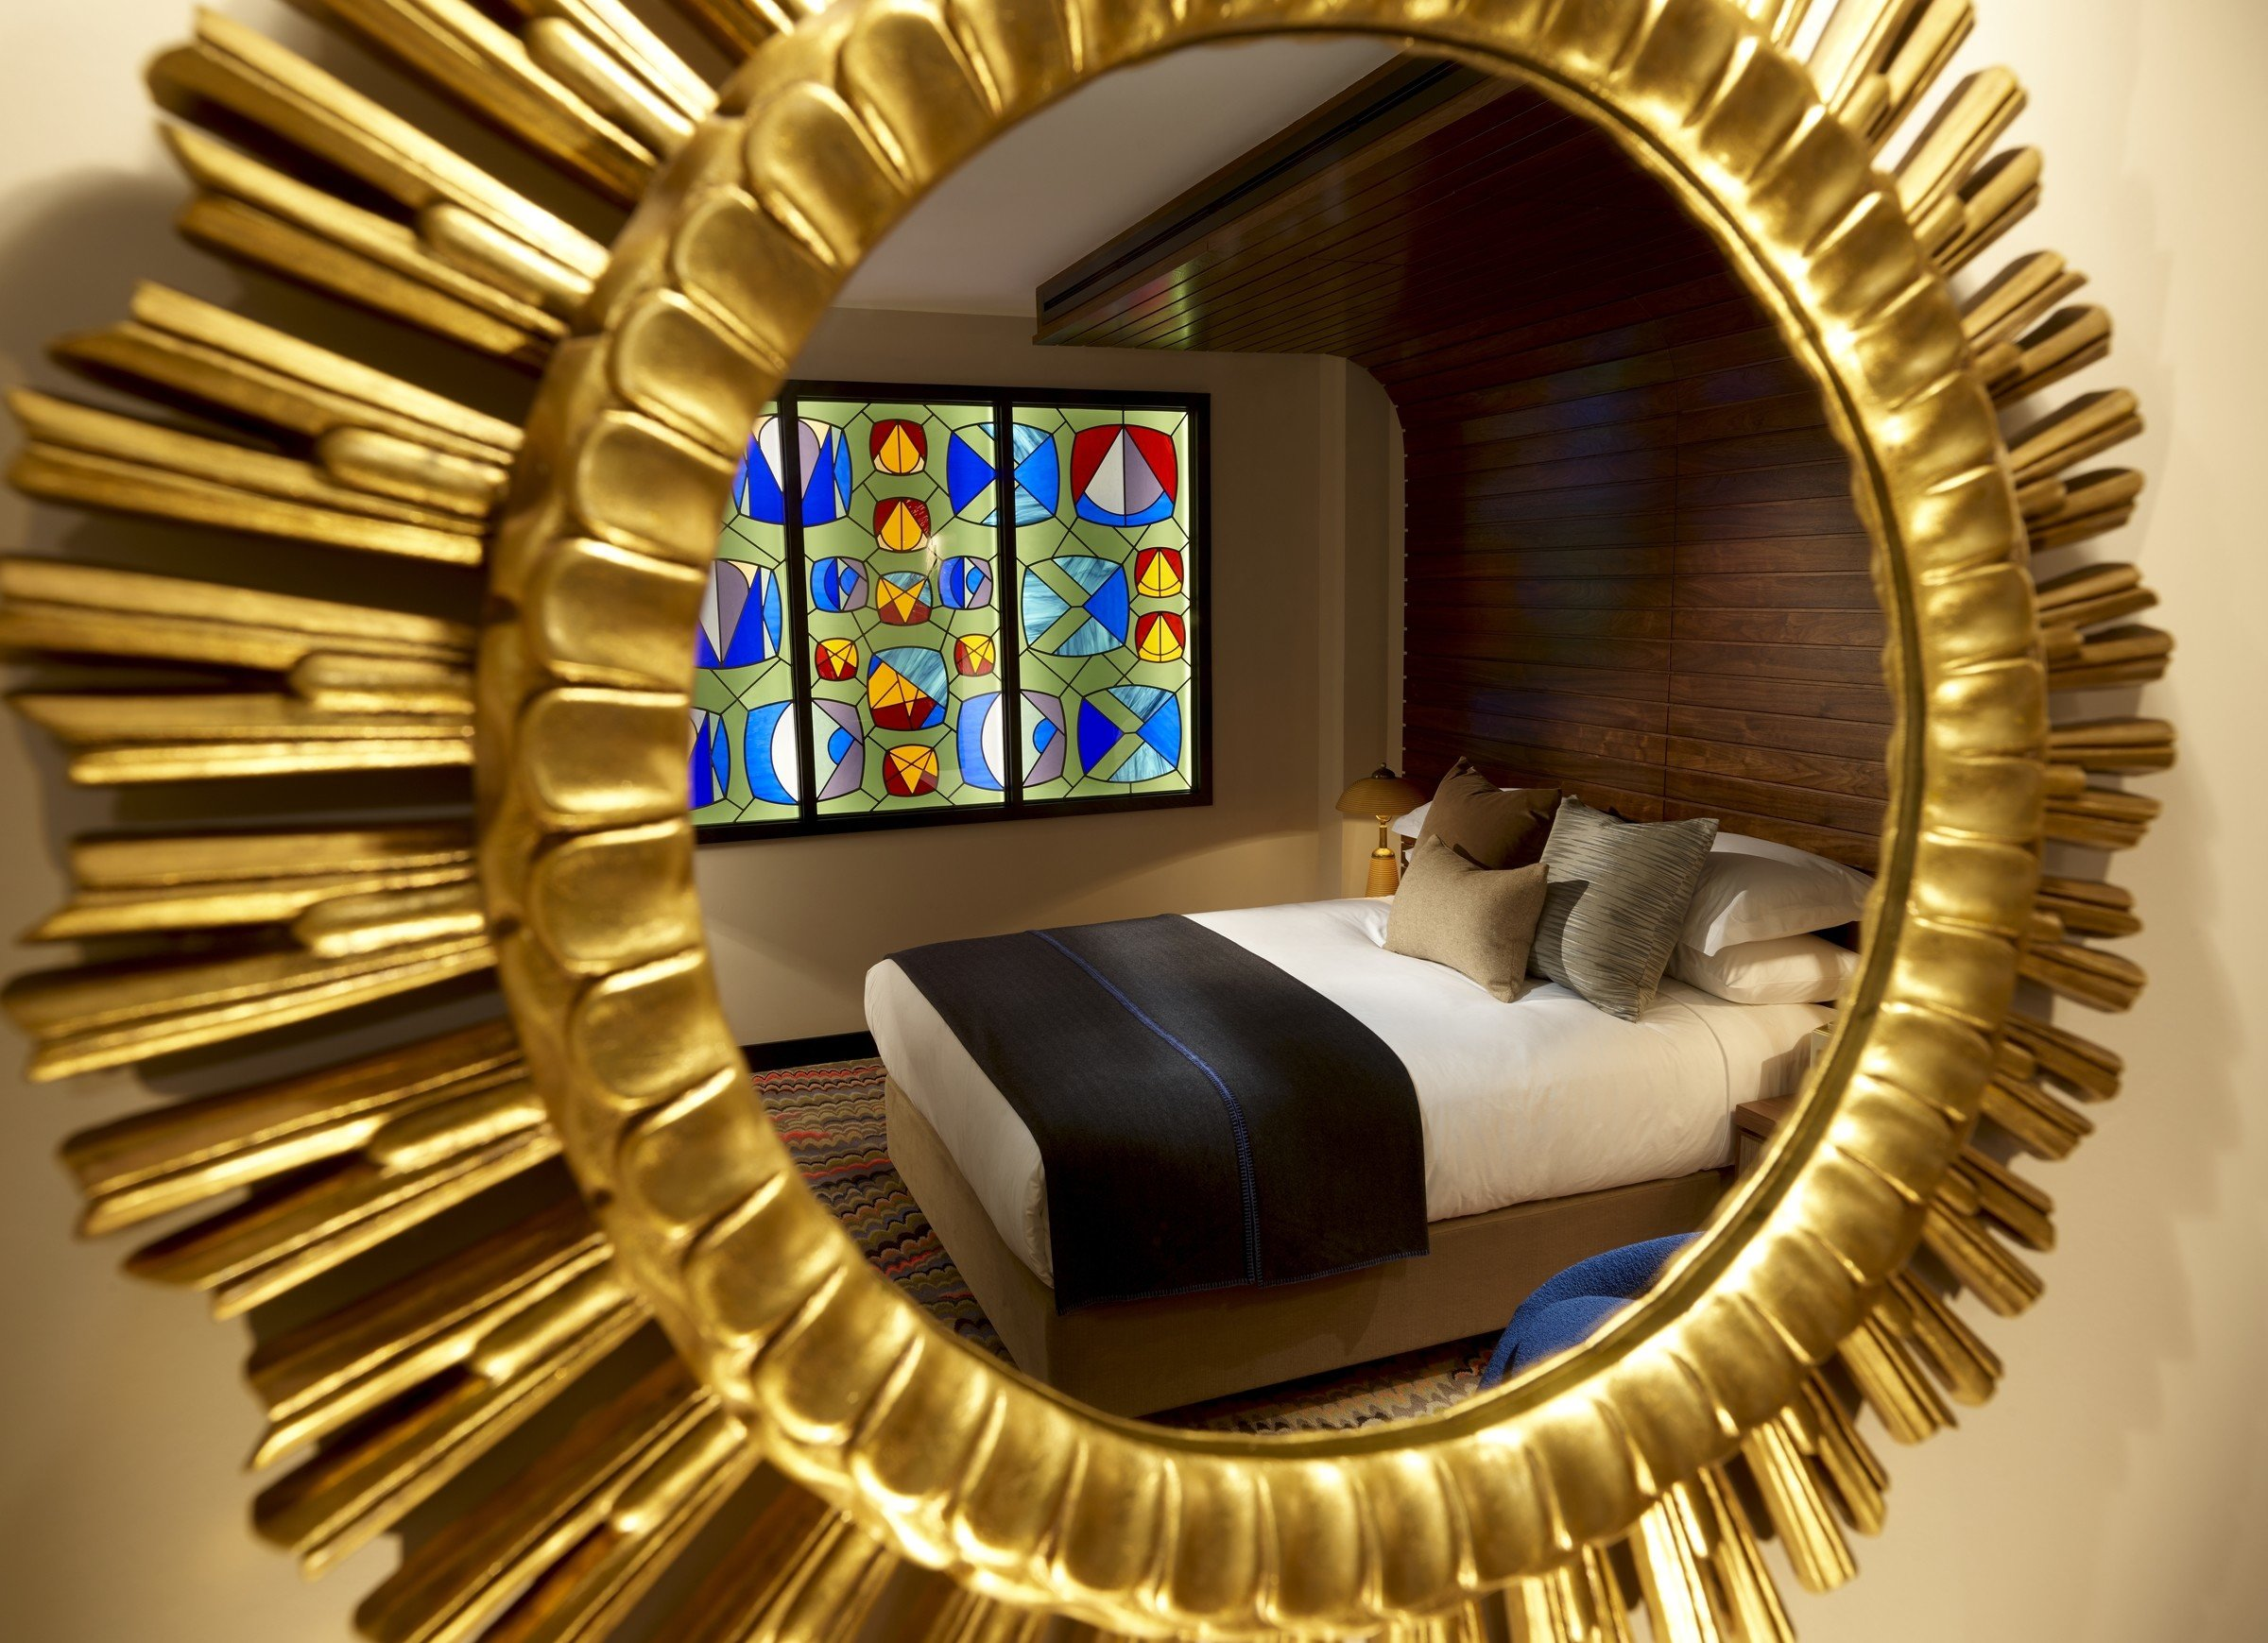 Budget Hotels London color metalware living room interior design modern art circle spiral Design window decorated gear